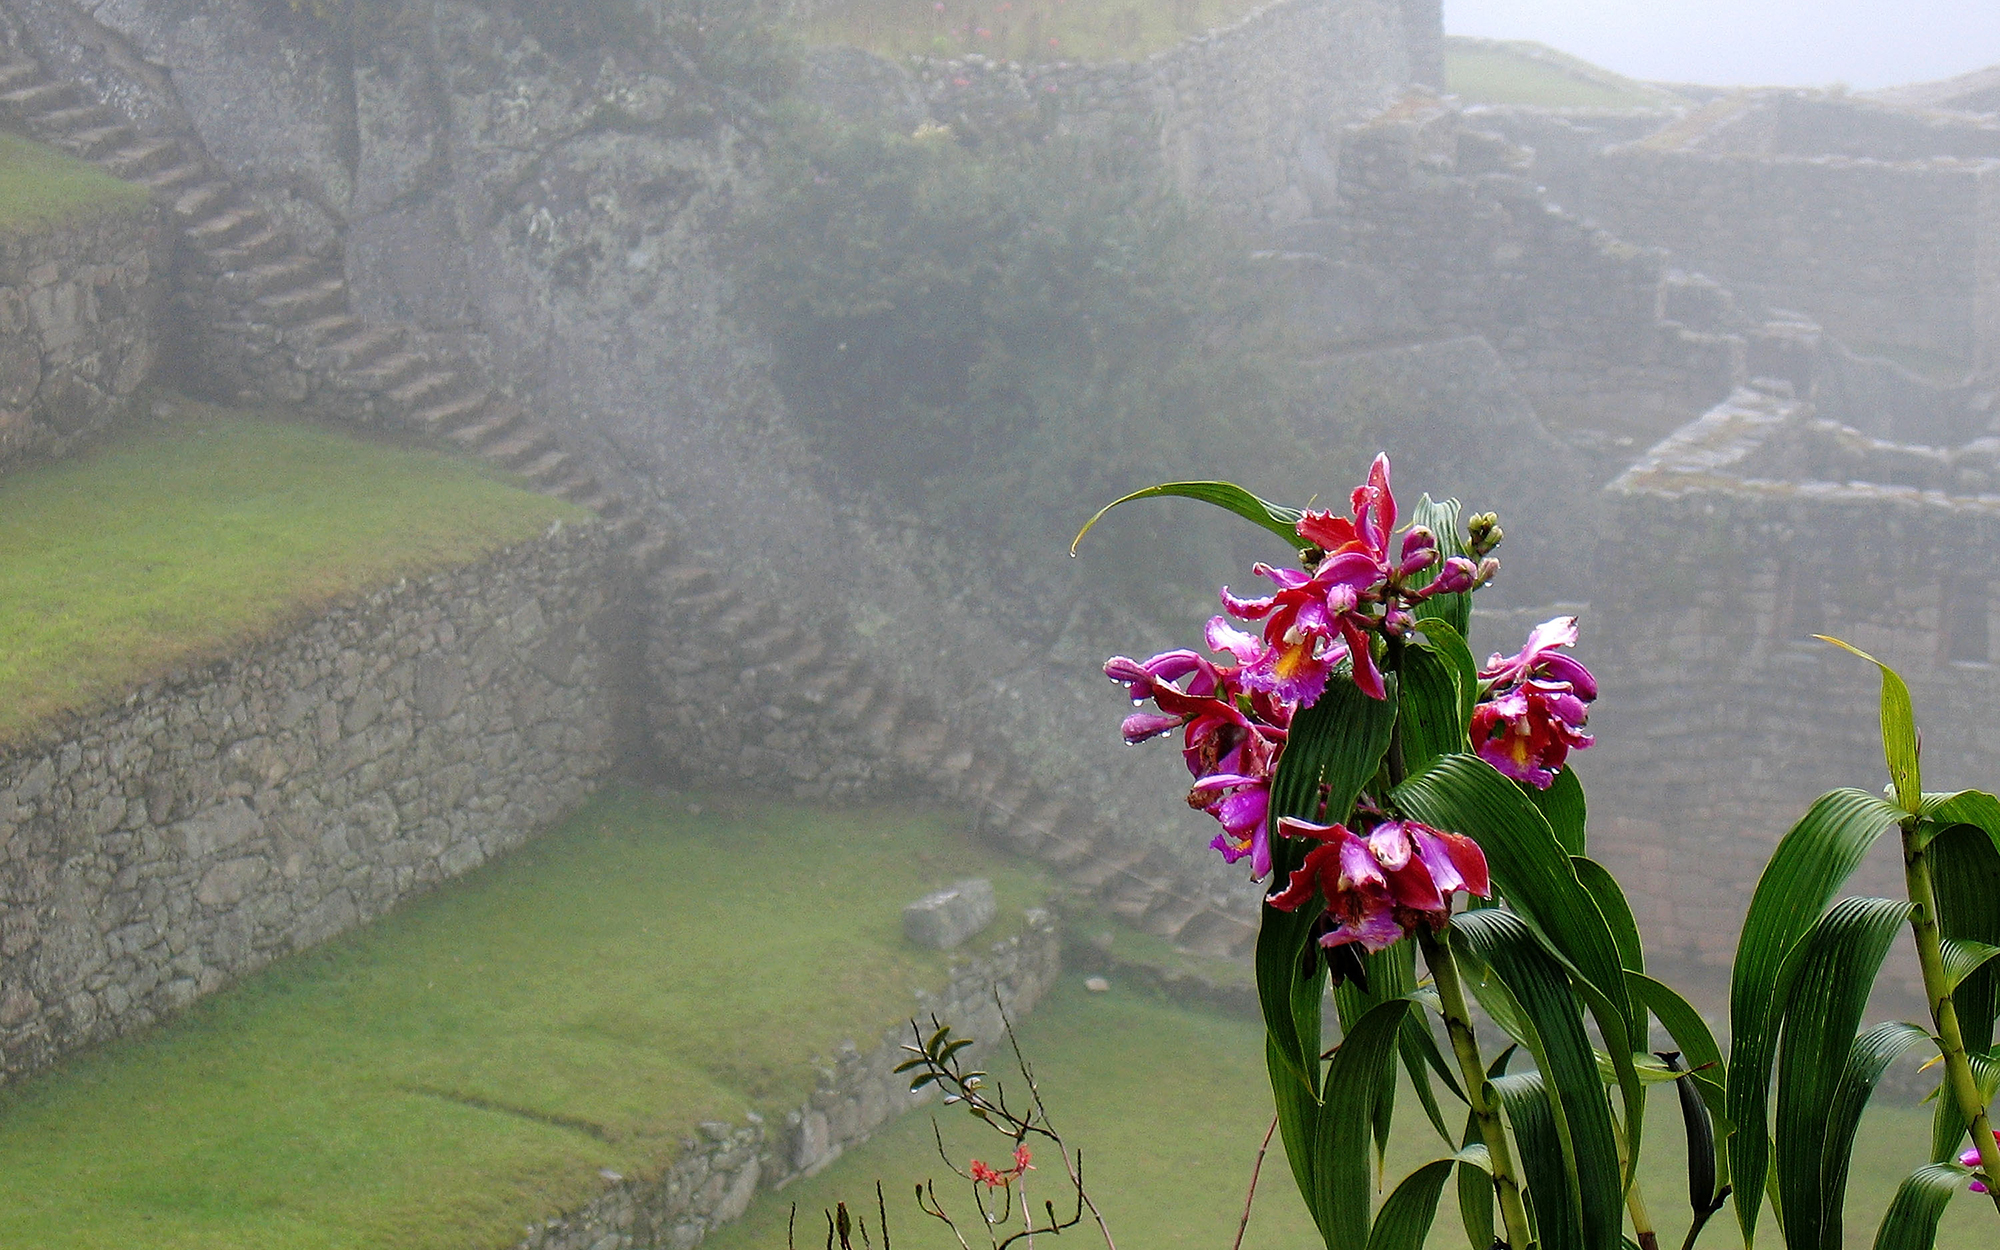 MACHU PICCHU, PERU - MARCH 20:  Orchids grow at the Inca ruins of the Machu Picchu sanctuary on March 20, 2005 near Cusco, Peru. The 15th-century Inca site, MachuPicchu also known as 'The Lost City of the Incas' is situated high above the Urubamba River.